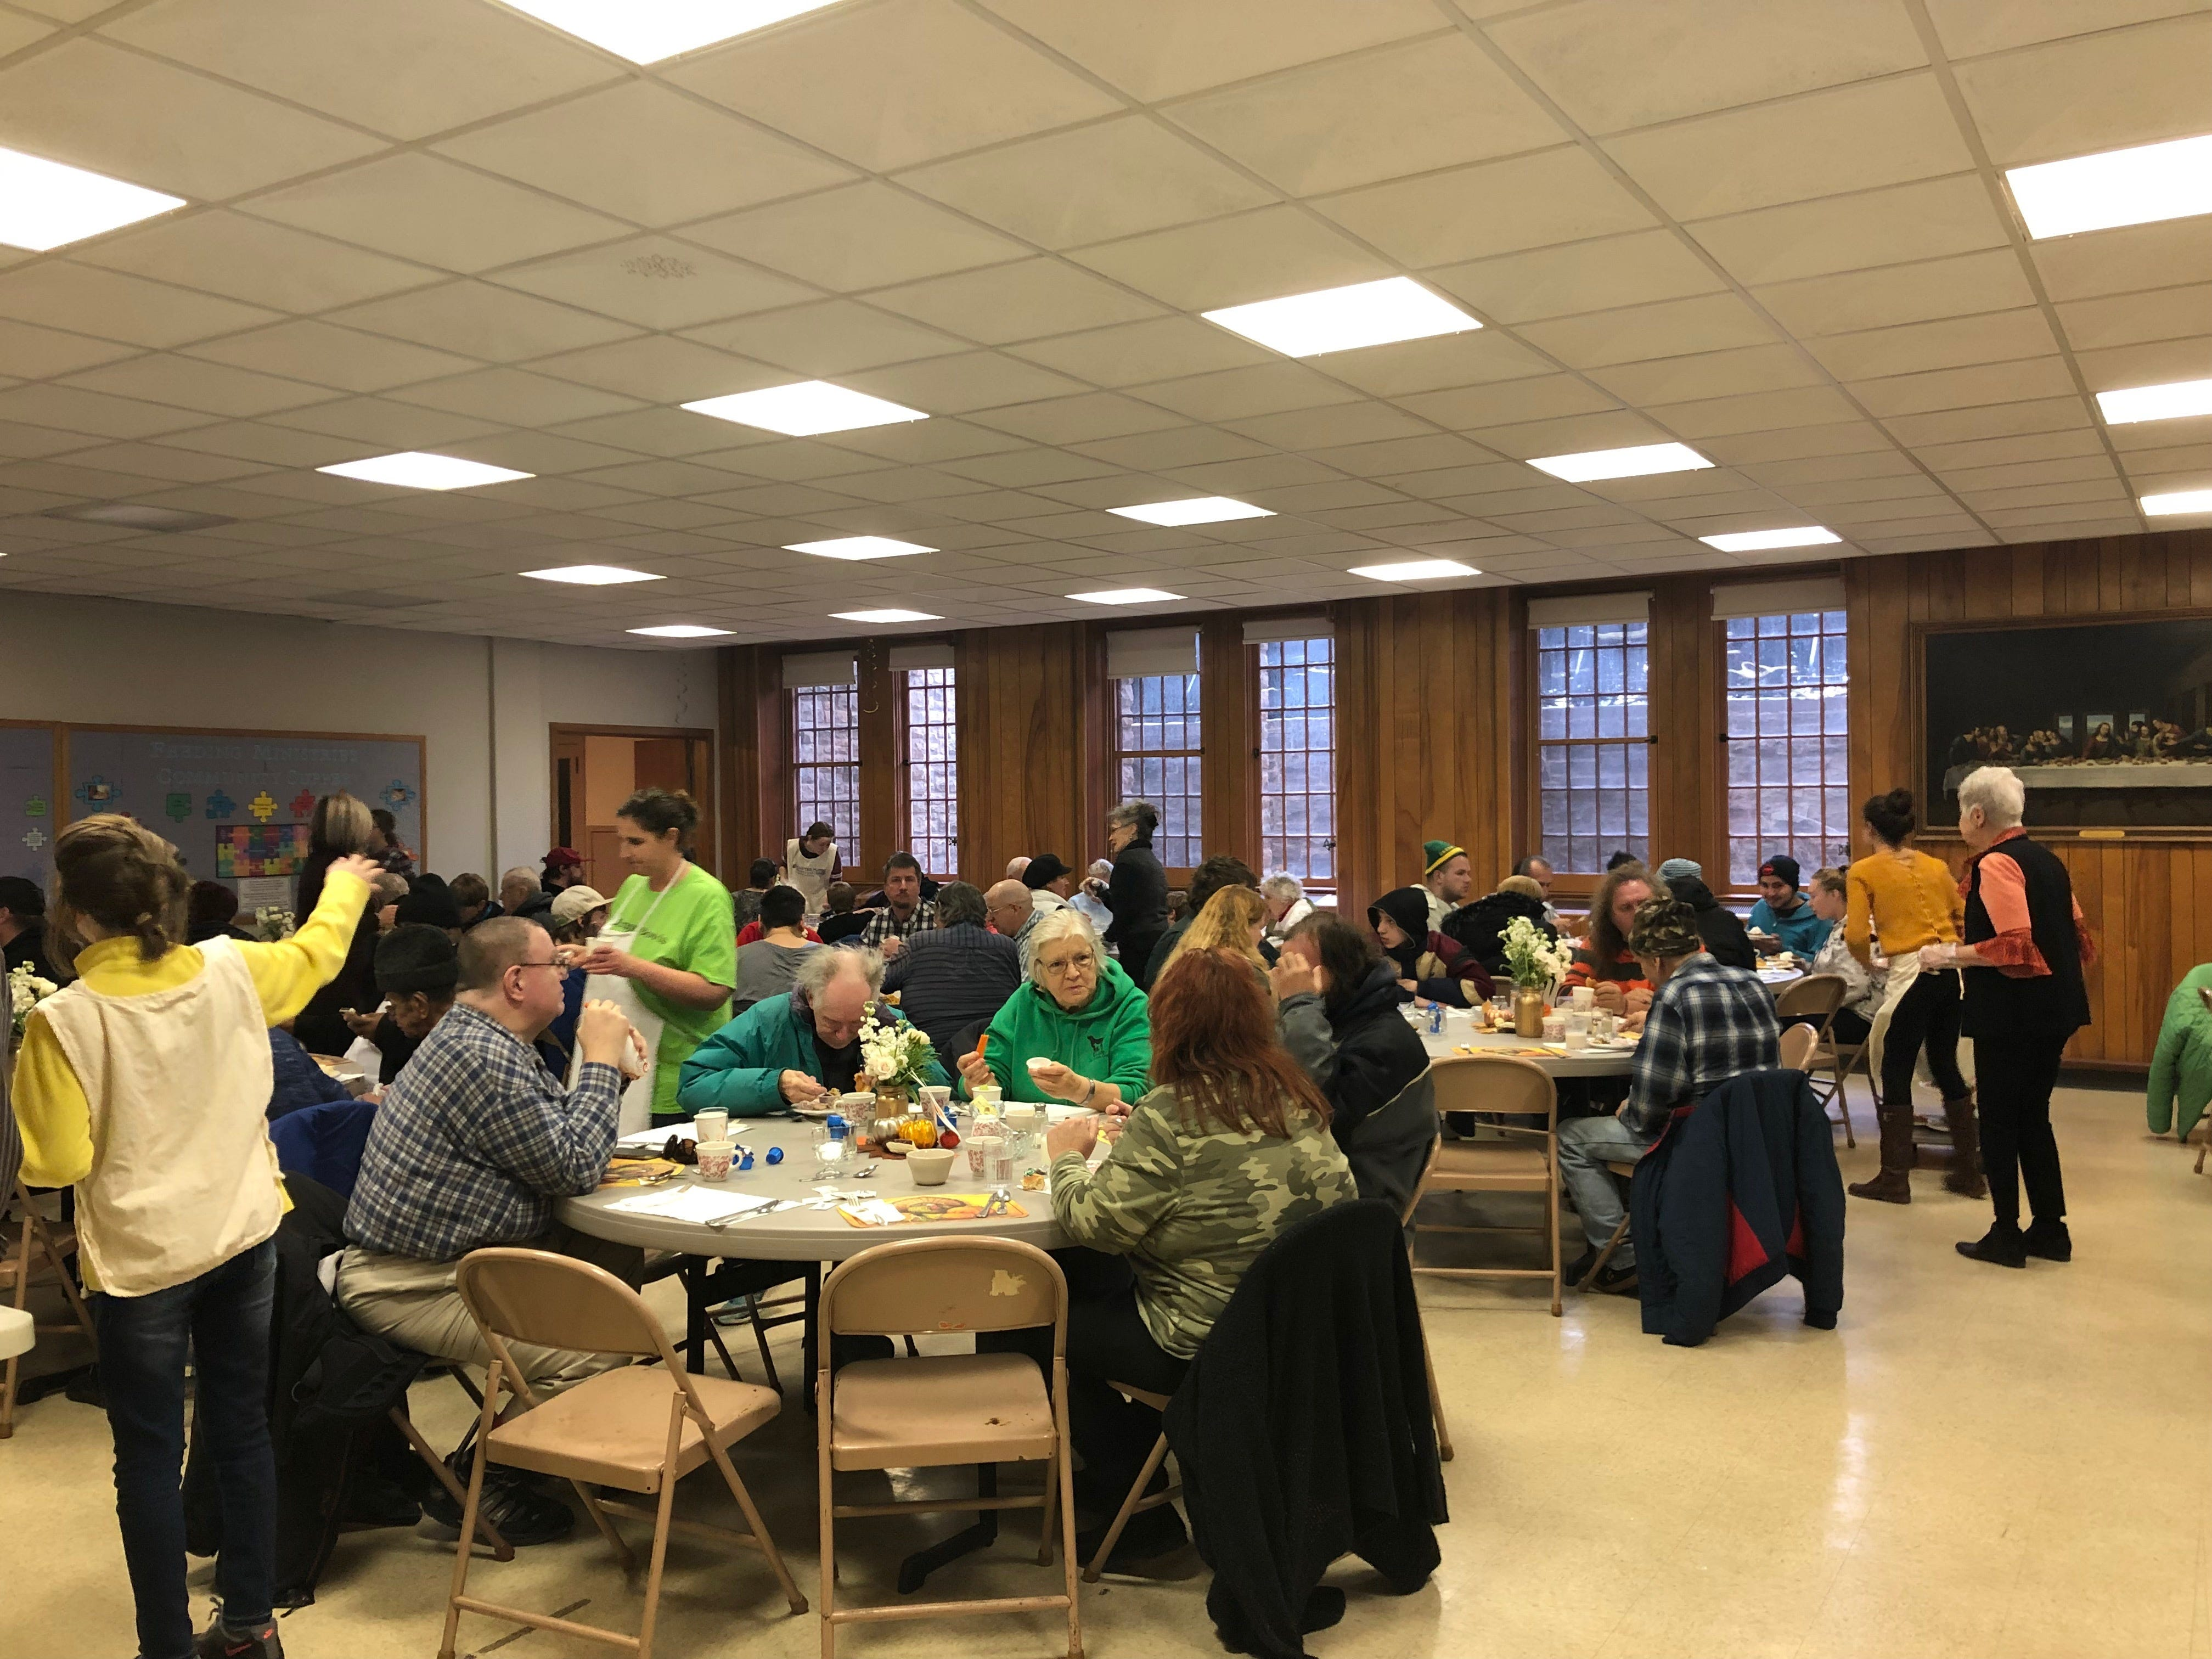 Community members chat over a turkey dinner at First Presbyterian Church on Nov. 22.